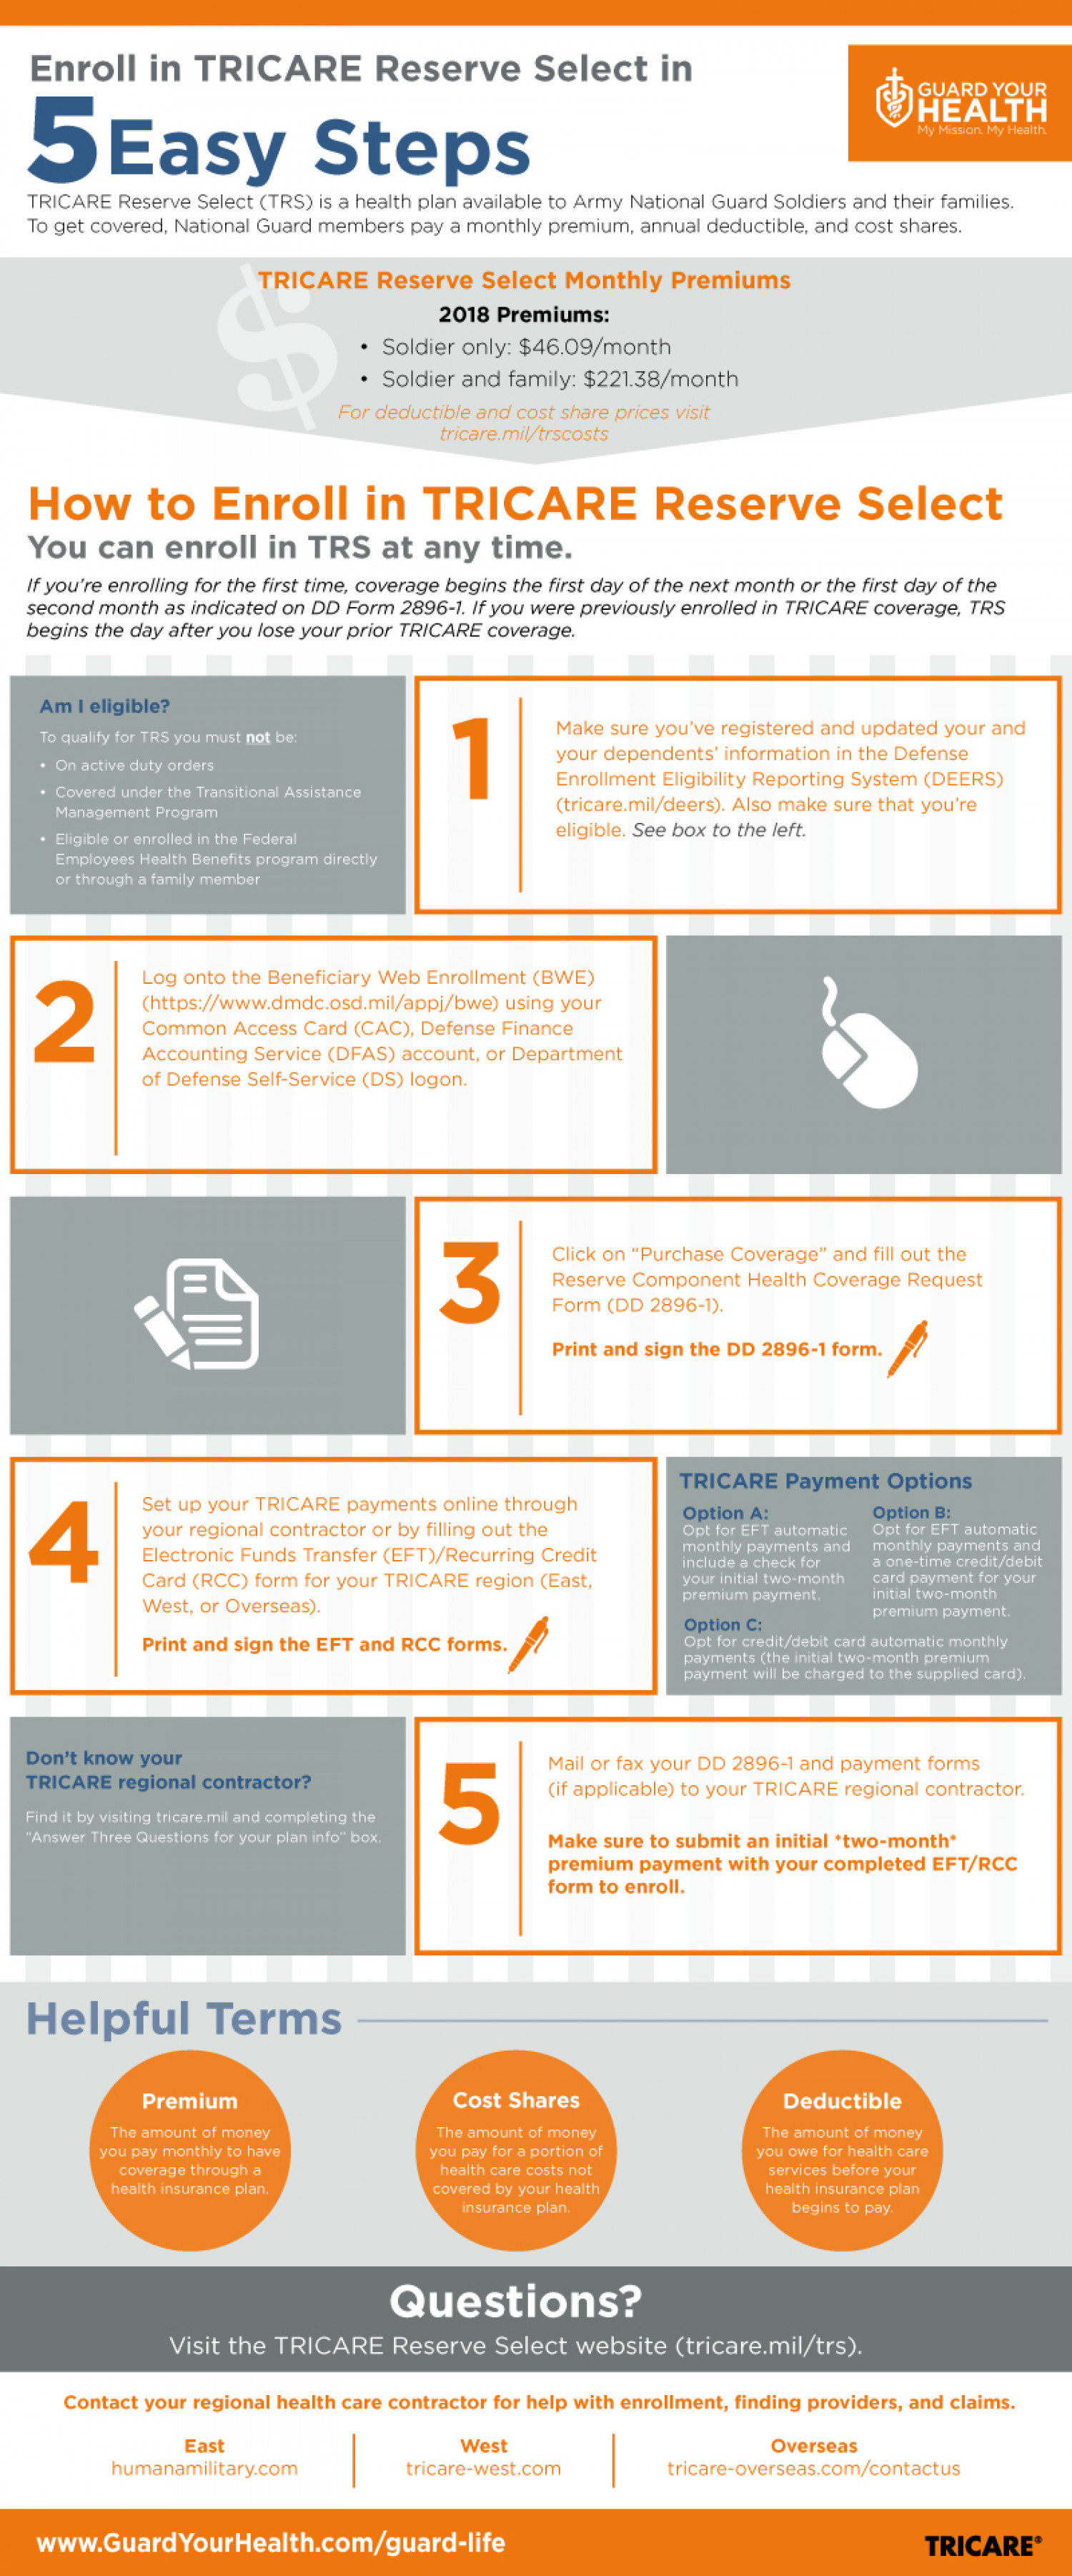 Enroll in TRICARE Reserve Select in 5 Easy Steps Infographic